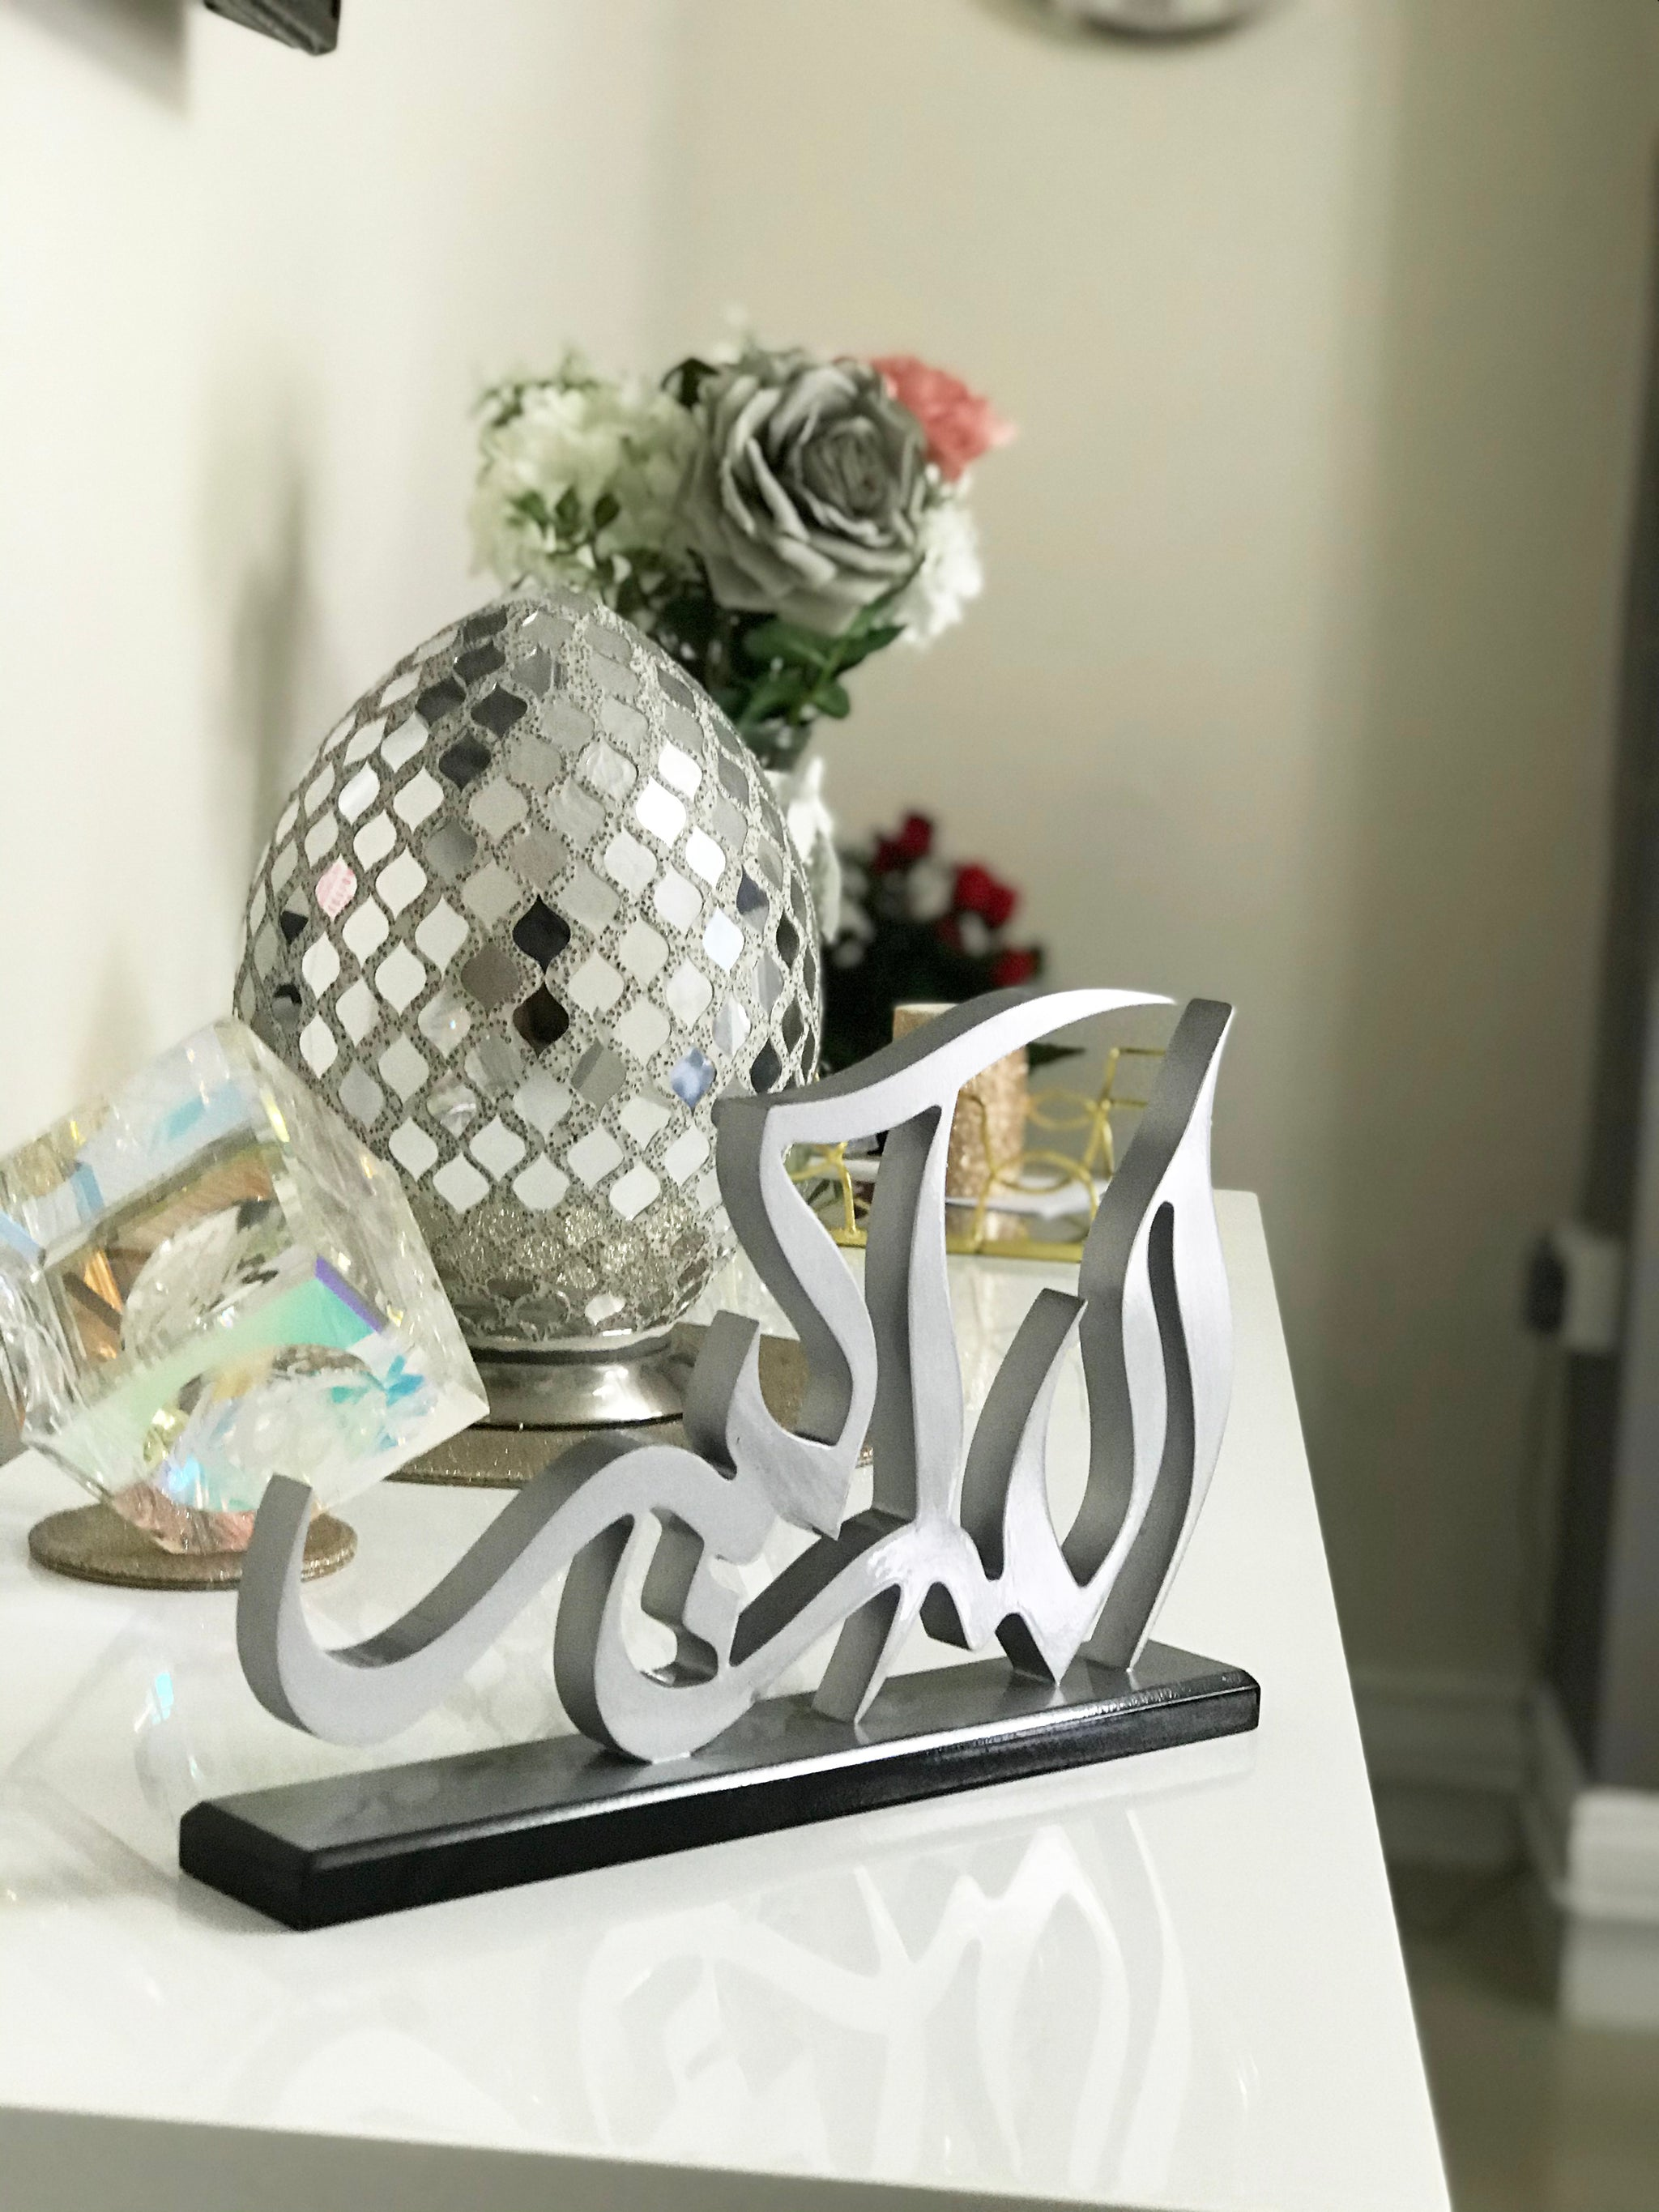 Allah ho Akbar Table Decor 3D Wood Islamic Calligraphy